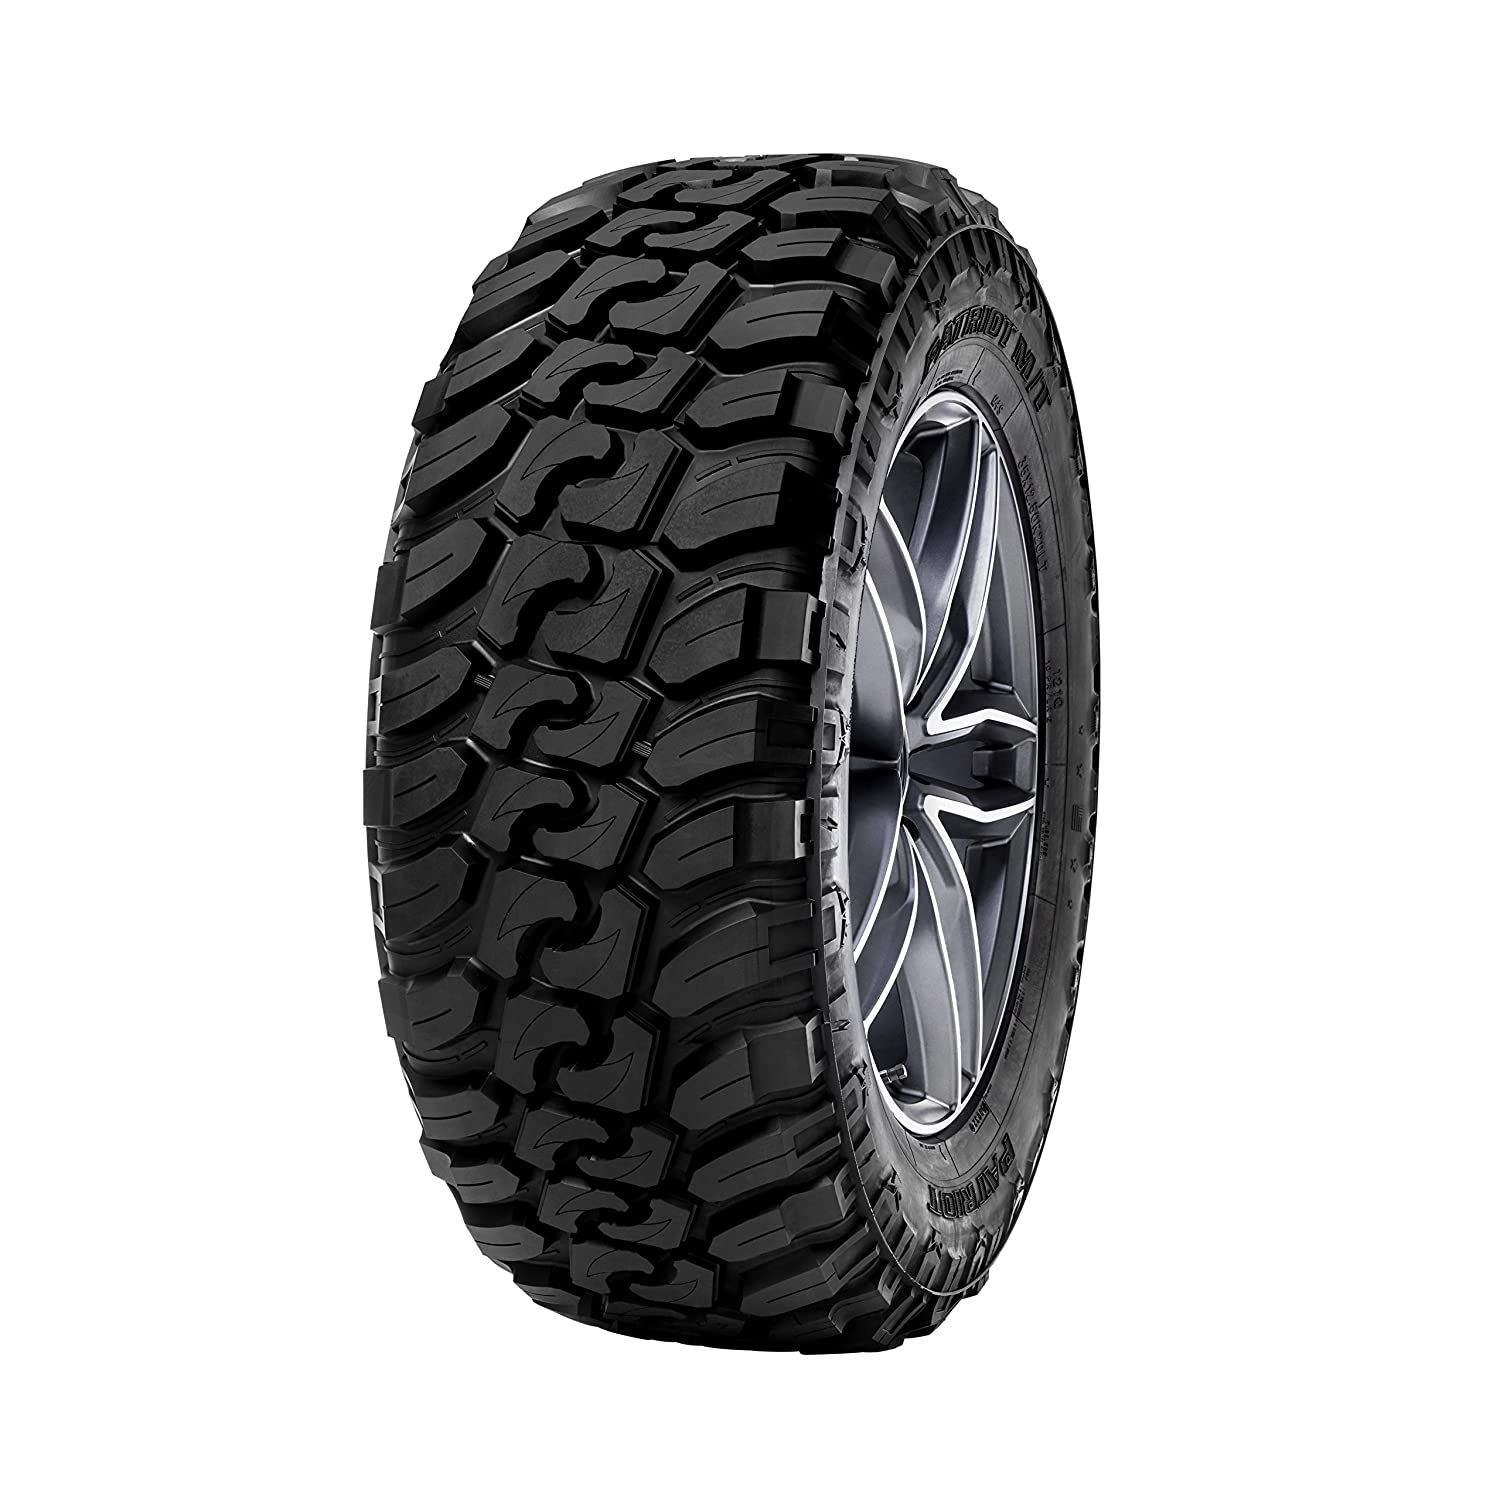 Patriot Tires Mt All Terrain Radial Tire 35x12 50r18lt 123q Click Image For More Details This Is An Affi In 2020 Automotive Tires Run Flat Tire Tire Manufacturers